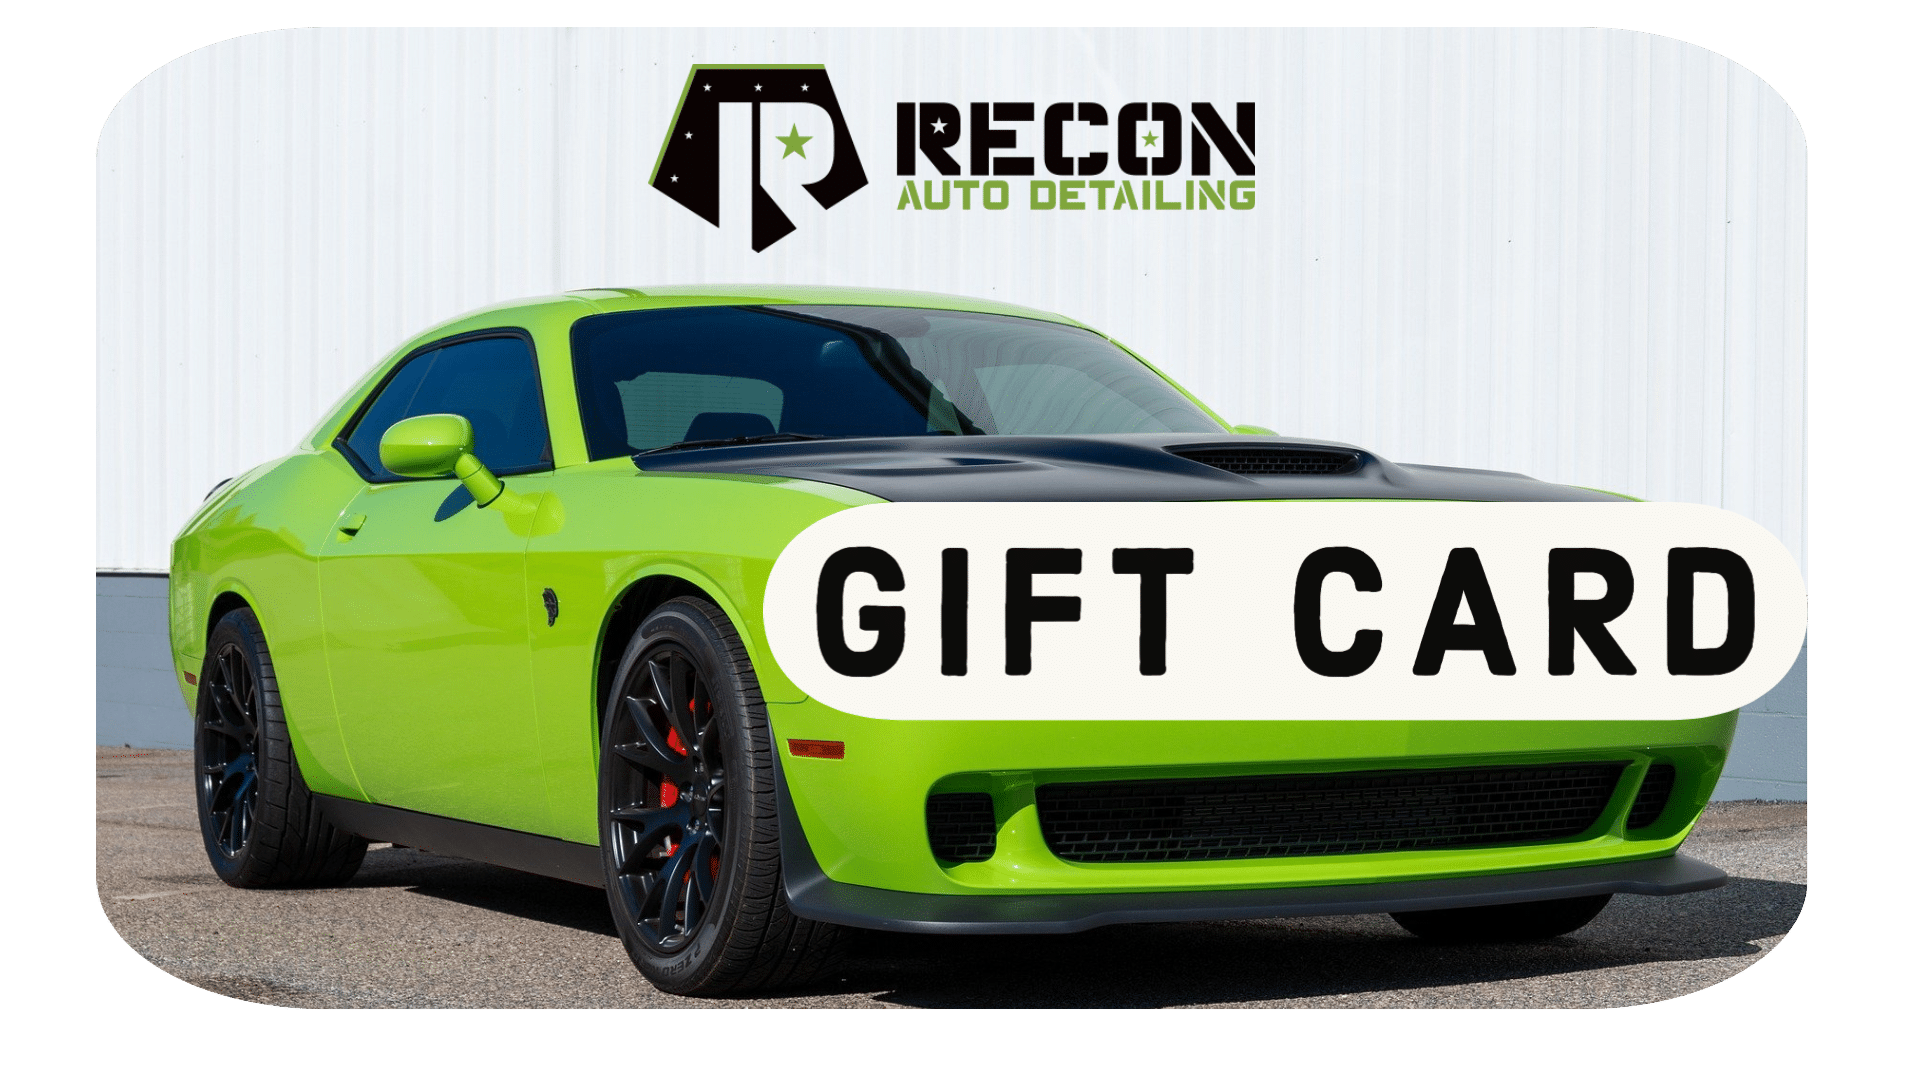 recon auto detailing tucson gift cards